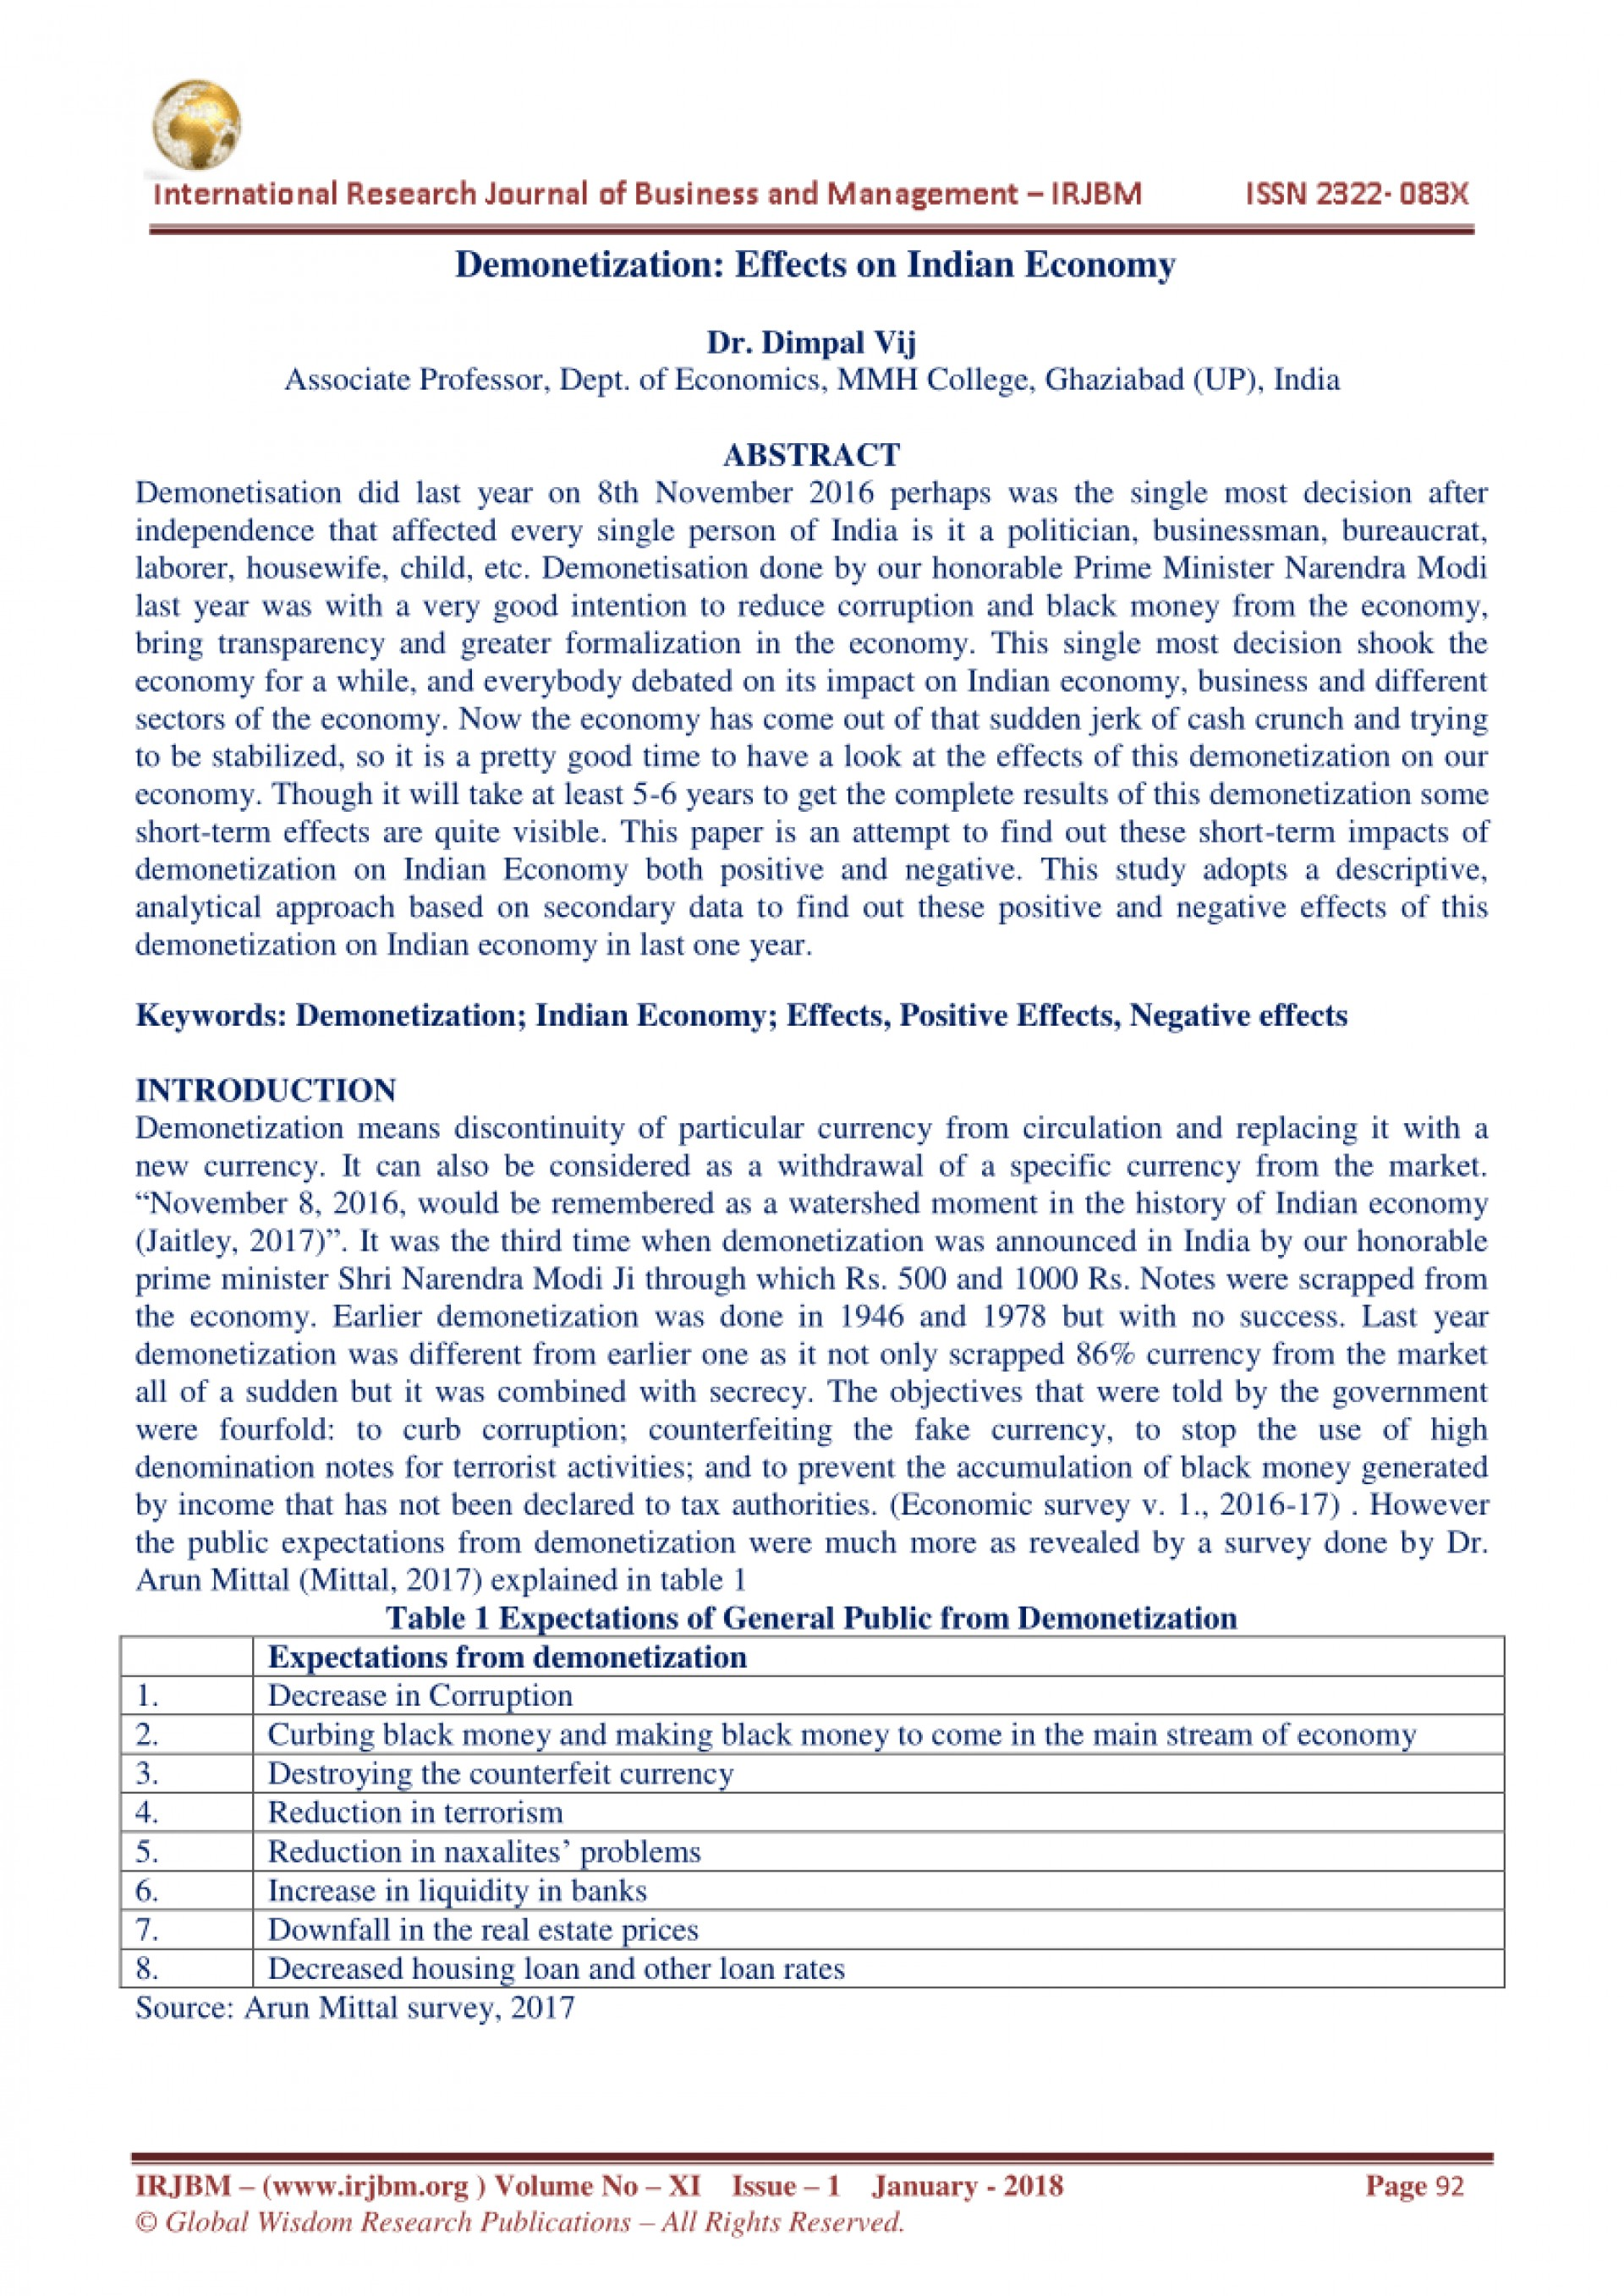 002 Demonetization And Its Impact On Indian Economy Research Paper Frightening 1920